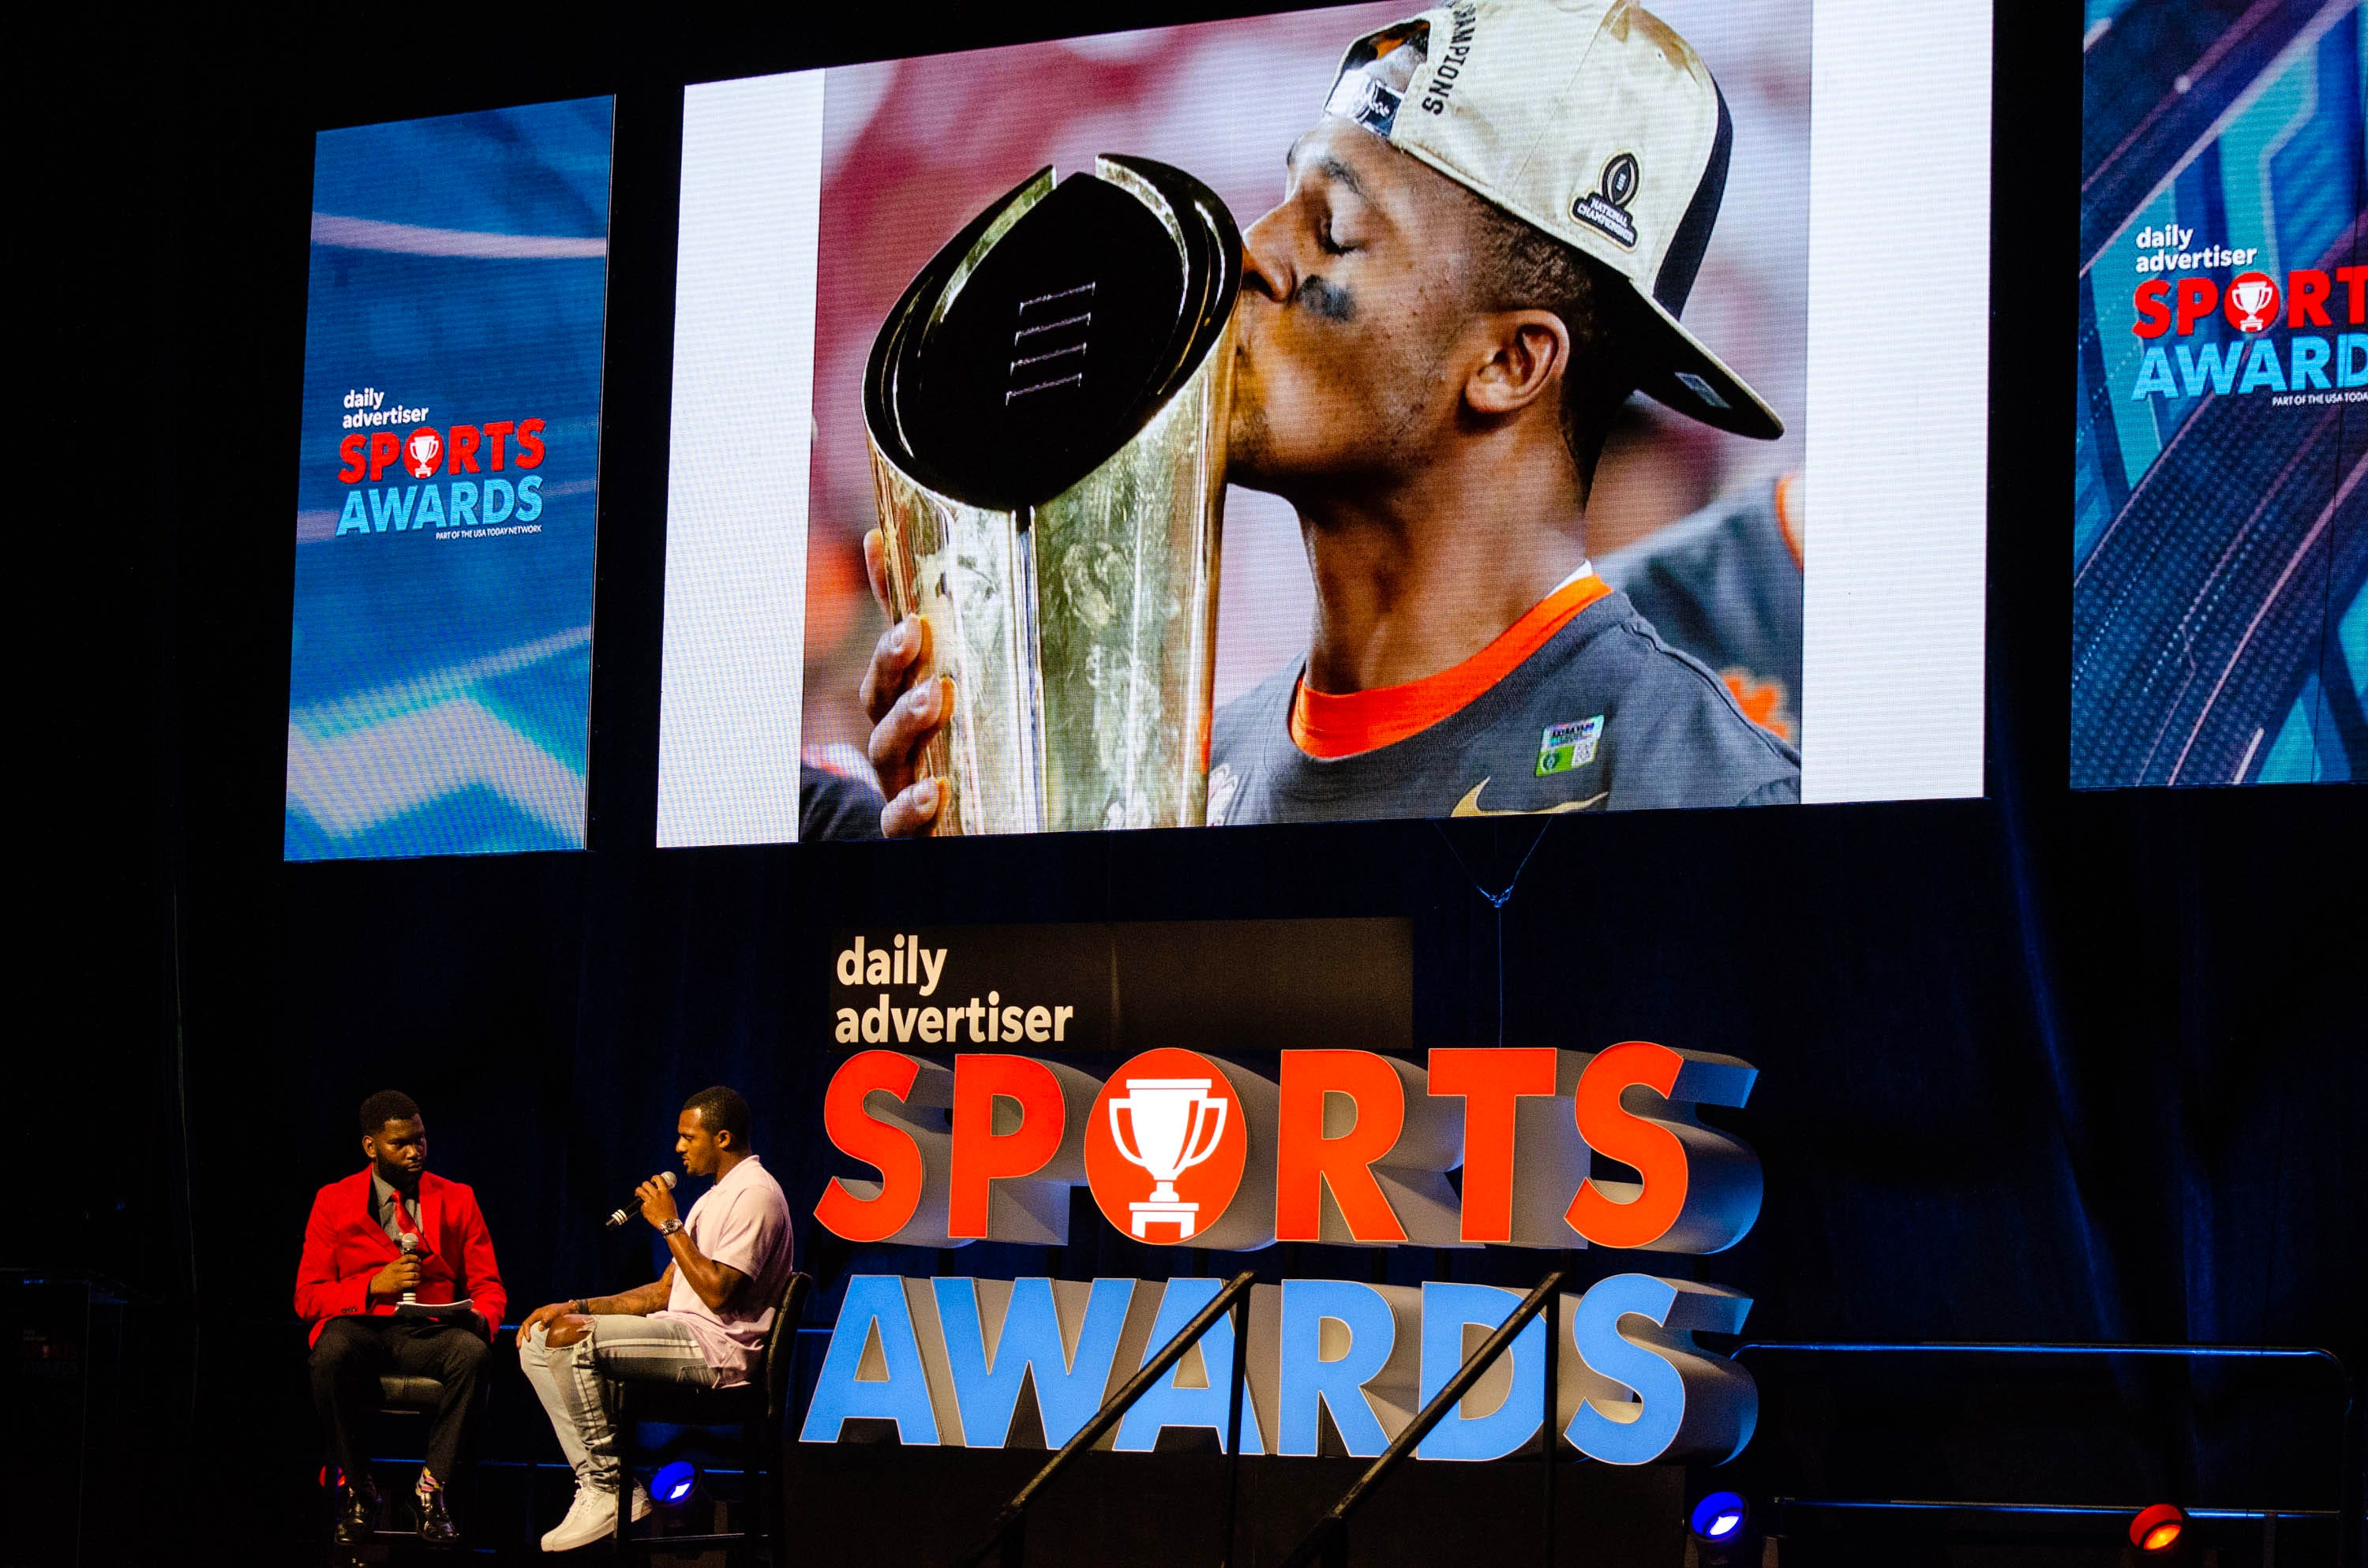 PHOTOS: The Daily Advertiser Sports Awards